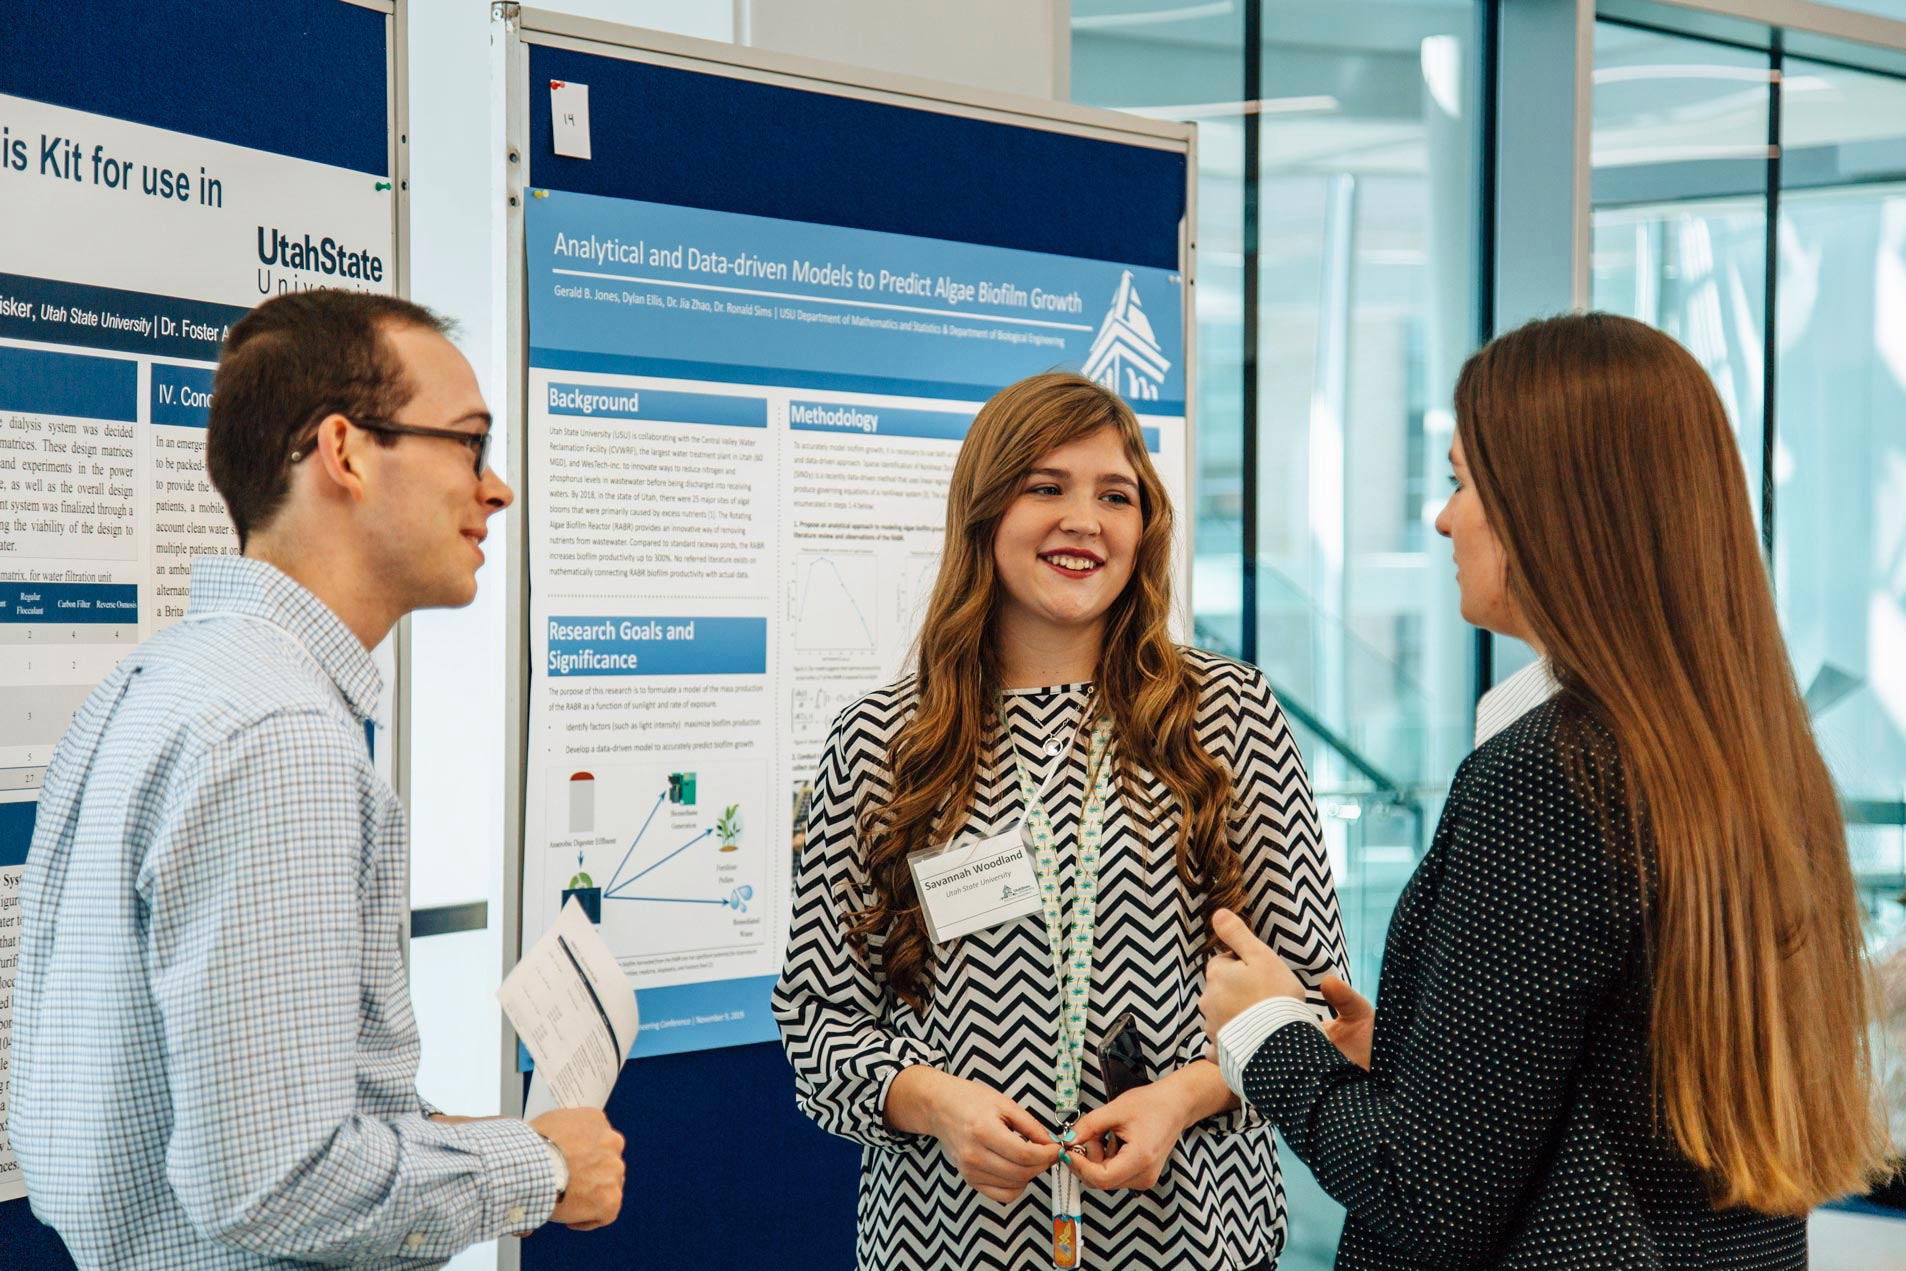 IBEC 2019 poster presentations from students